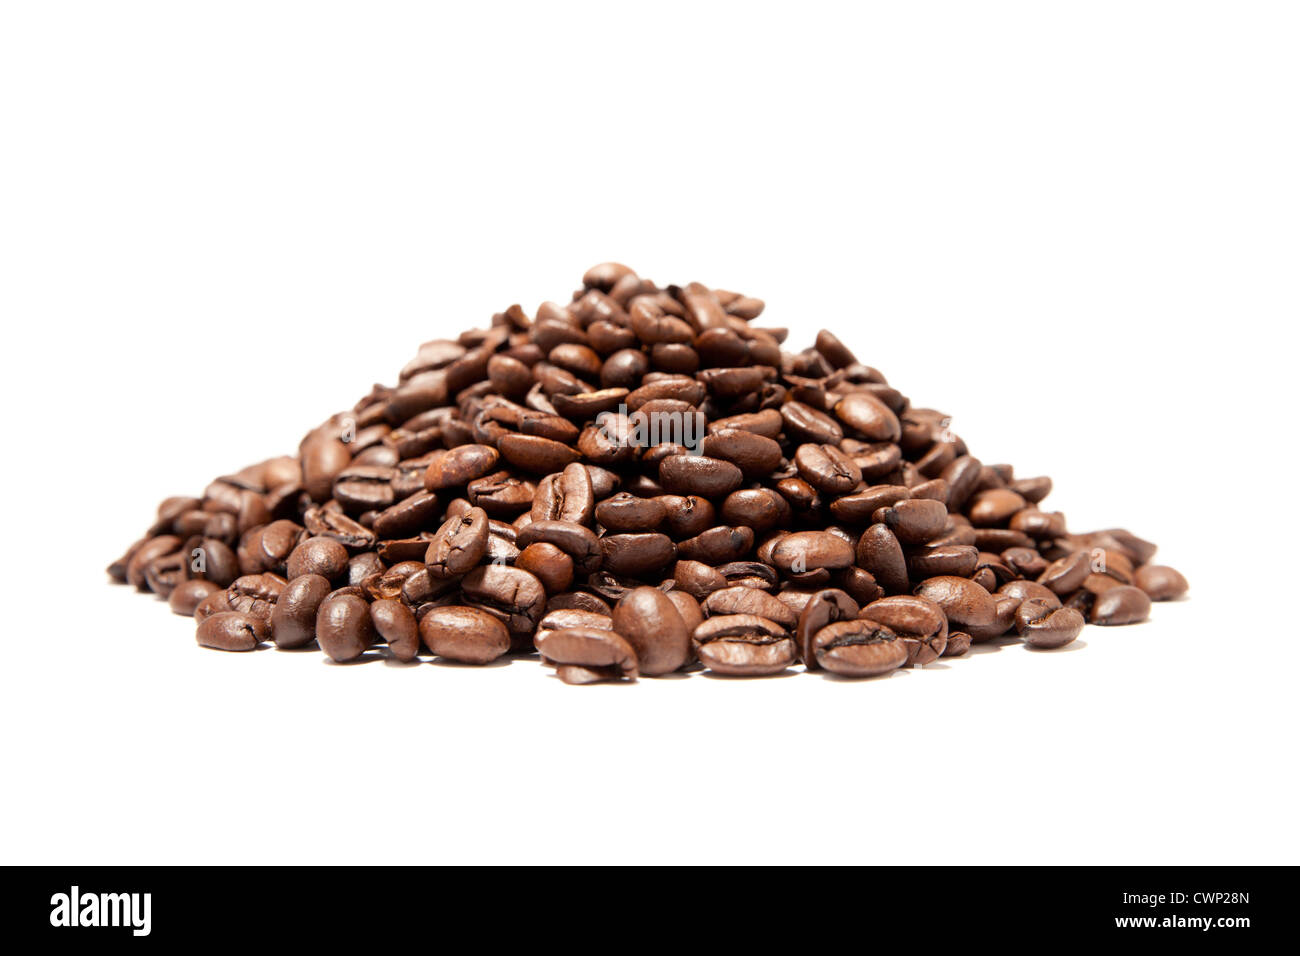 A pound of well roasted arabica coffee beans - Stock Image